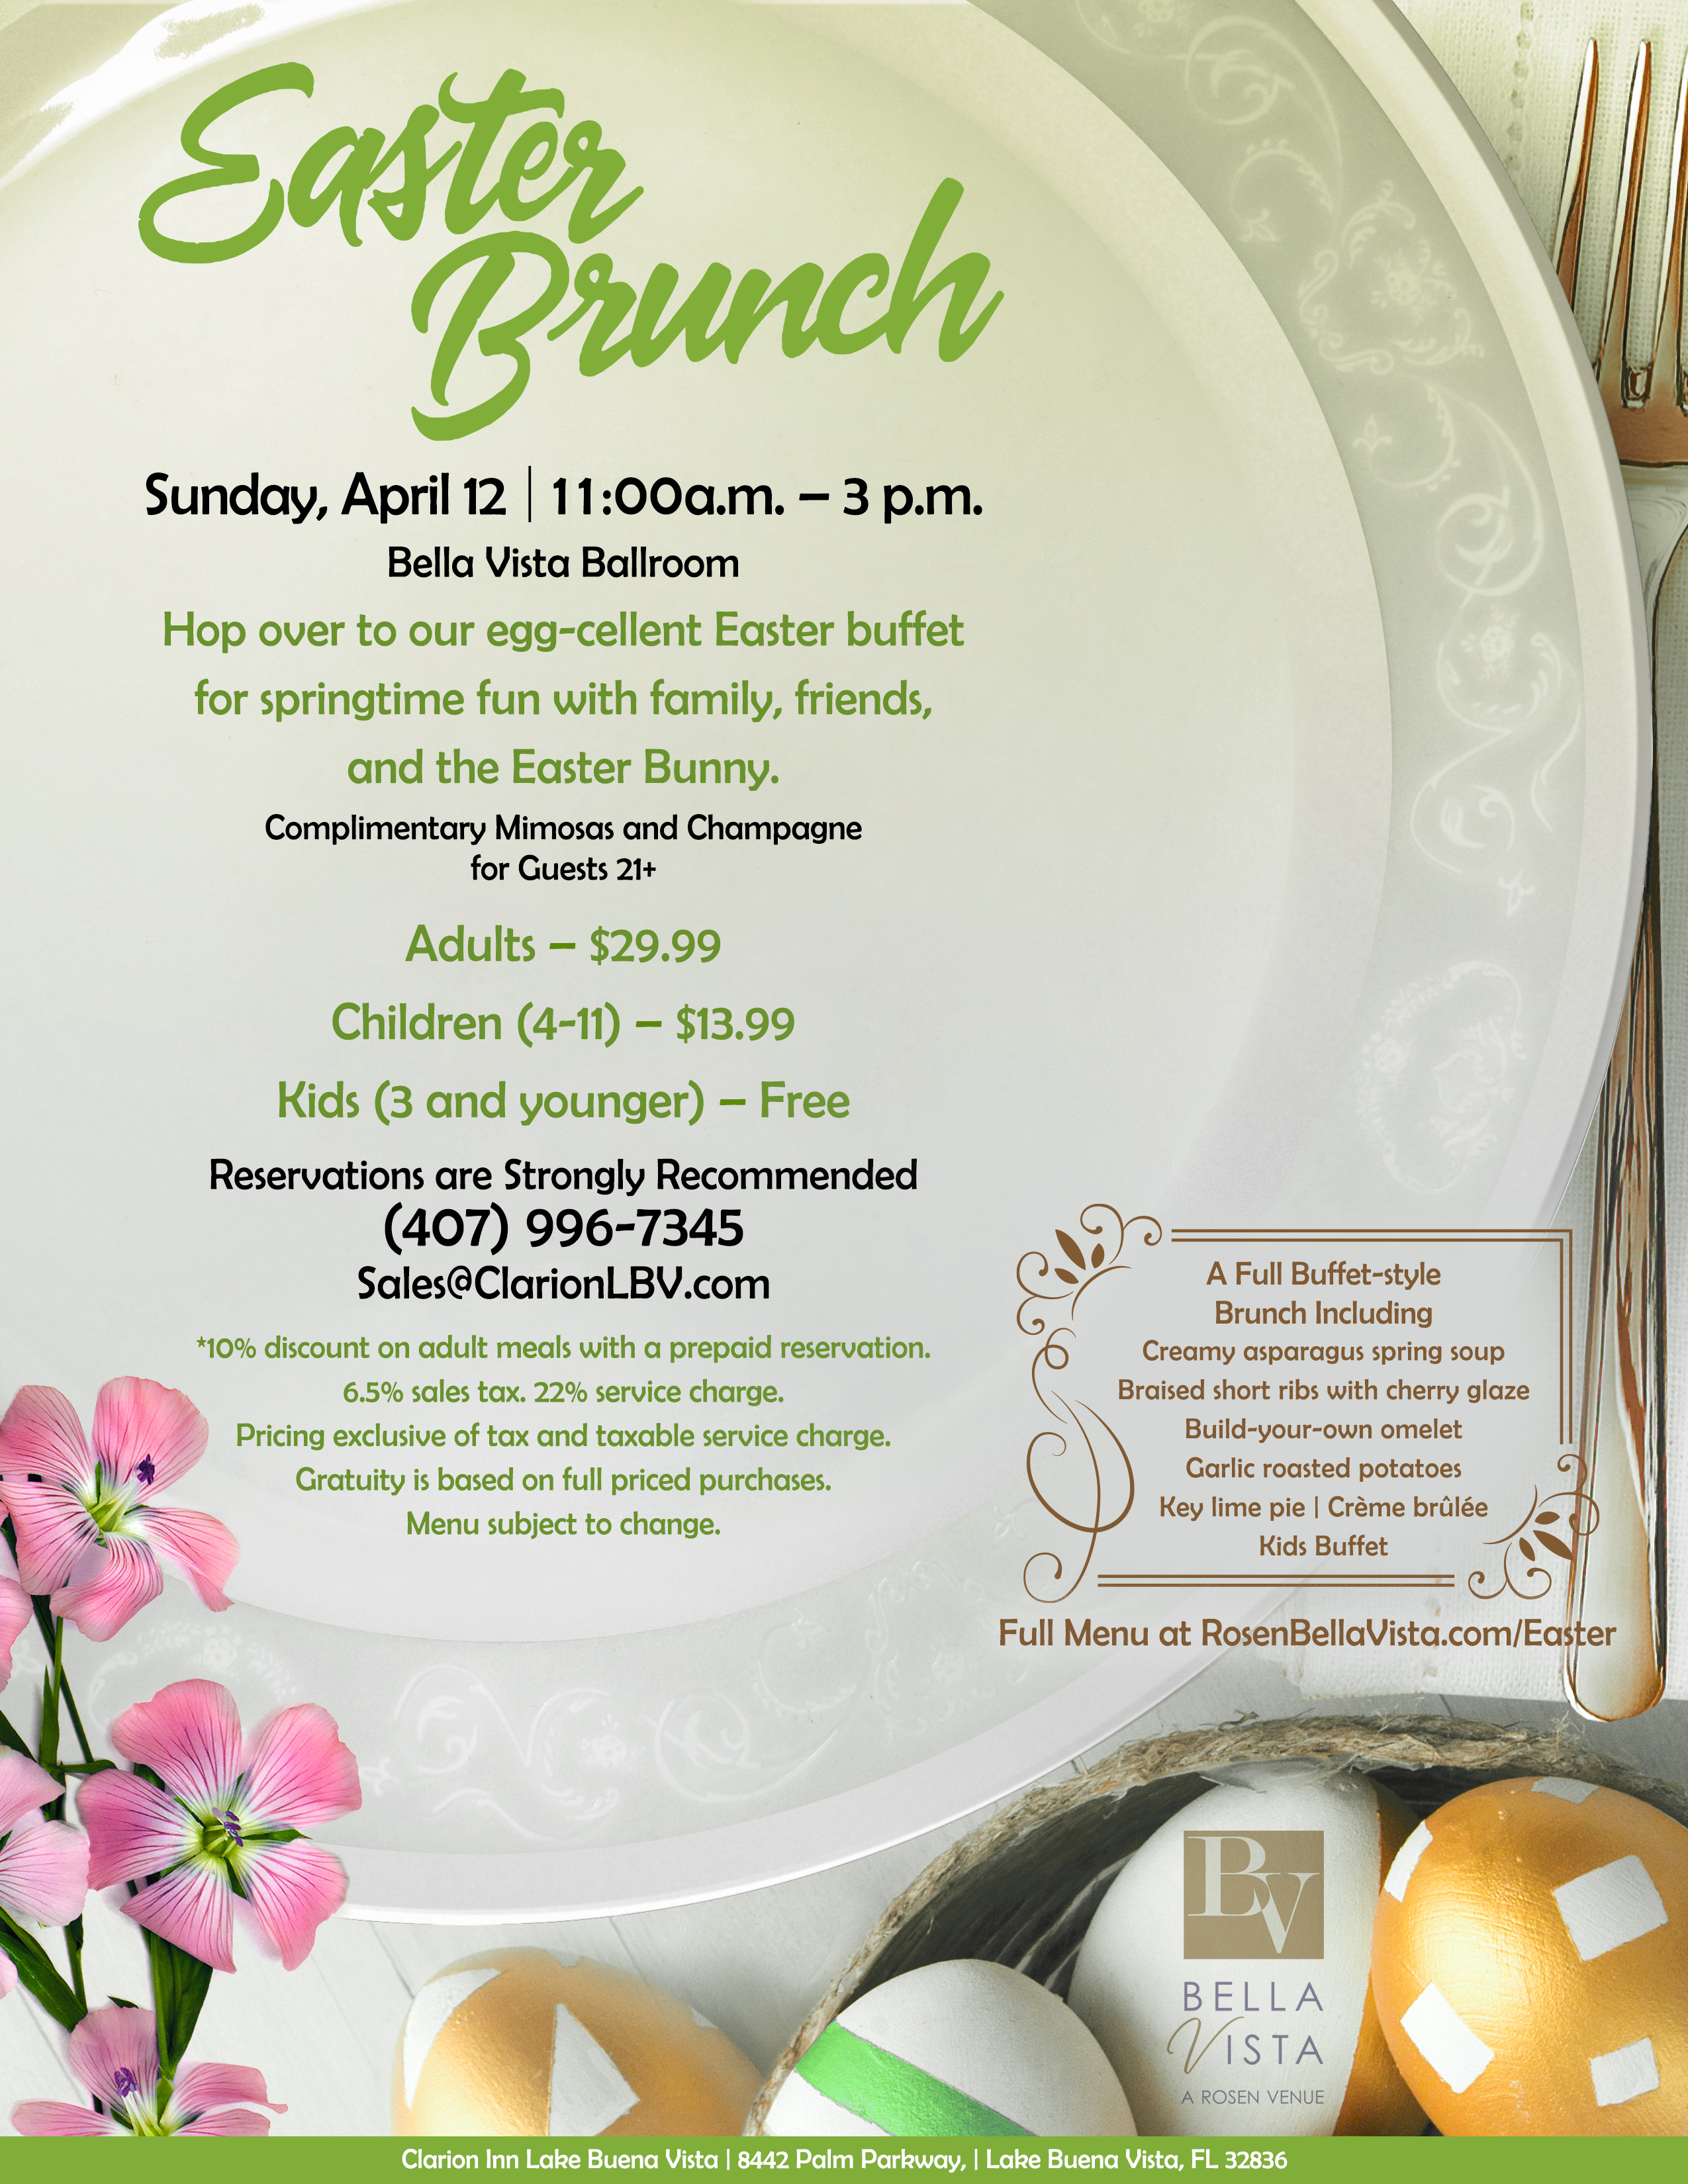 Easter Brunch at Bella Vista a Rosen Venue    Sunday, April 12 | 11:00 a.m. – 3 p.m. Bella Vista Ballroom Hop over to our egg-cellent Easter buffet  for springtime fun with family, friends, and the Easter Bunny.  Complimentary Mimosas and Champagne for Guests 21+    Adults – $29.99 Children (4-11) – $13.99 Kids (3 and younger) – Free Reservations are Strongly Recommended    (407) 996-7345 Sales@ClarionLBV.com    *10 discount on adult meals with a prepaid reservation. 6.5% sales tax. 22% service charge. Pricing exclusive of tax and taxable service charge. Gratuity is based on full priced purchases. Menu subject to change.    A Full Buffet-style  Brunch Including Creamy asparagus spring soup Braised short ribs with cherry glaze Build-your-own omelet Garlic roasted potatoes Key lime pie | Crème brûlée Kids Buffet    Clarion Inn Lake Buena Vista | 8442 Palm Parkway, | Lake Buena Vista, FL 32836